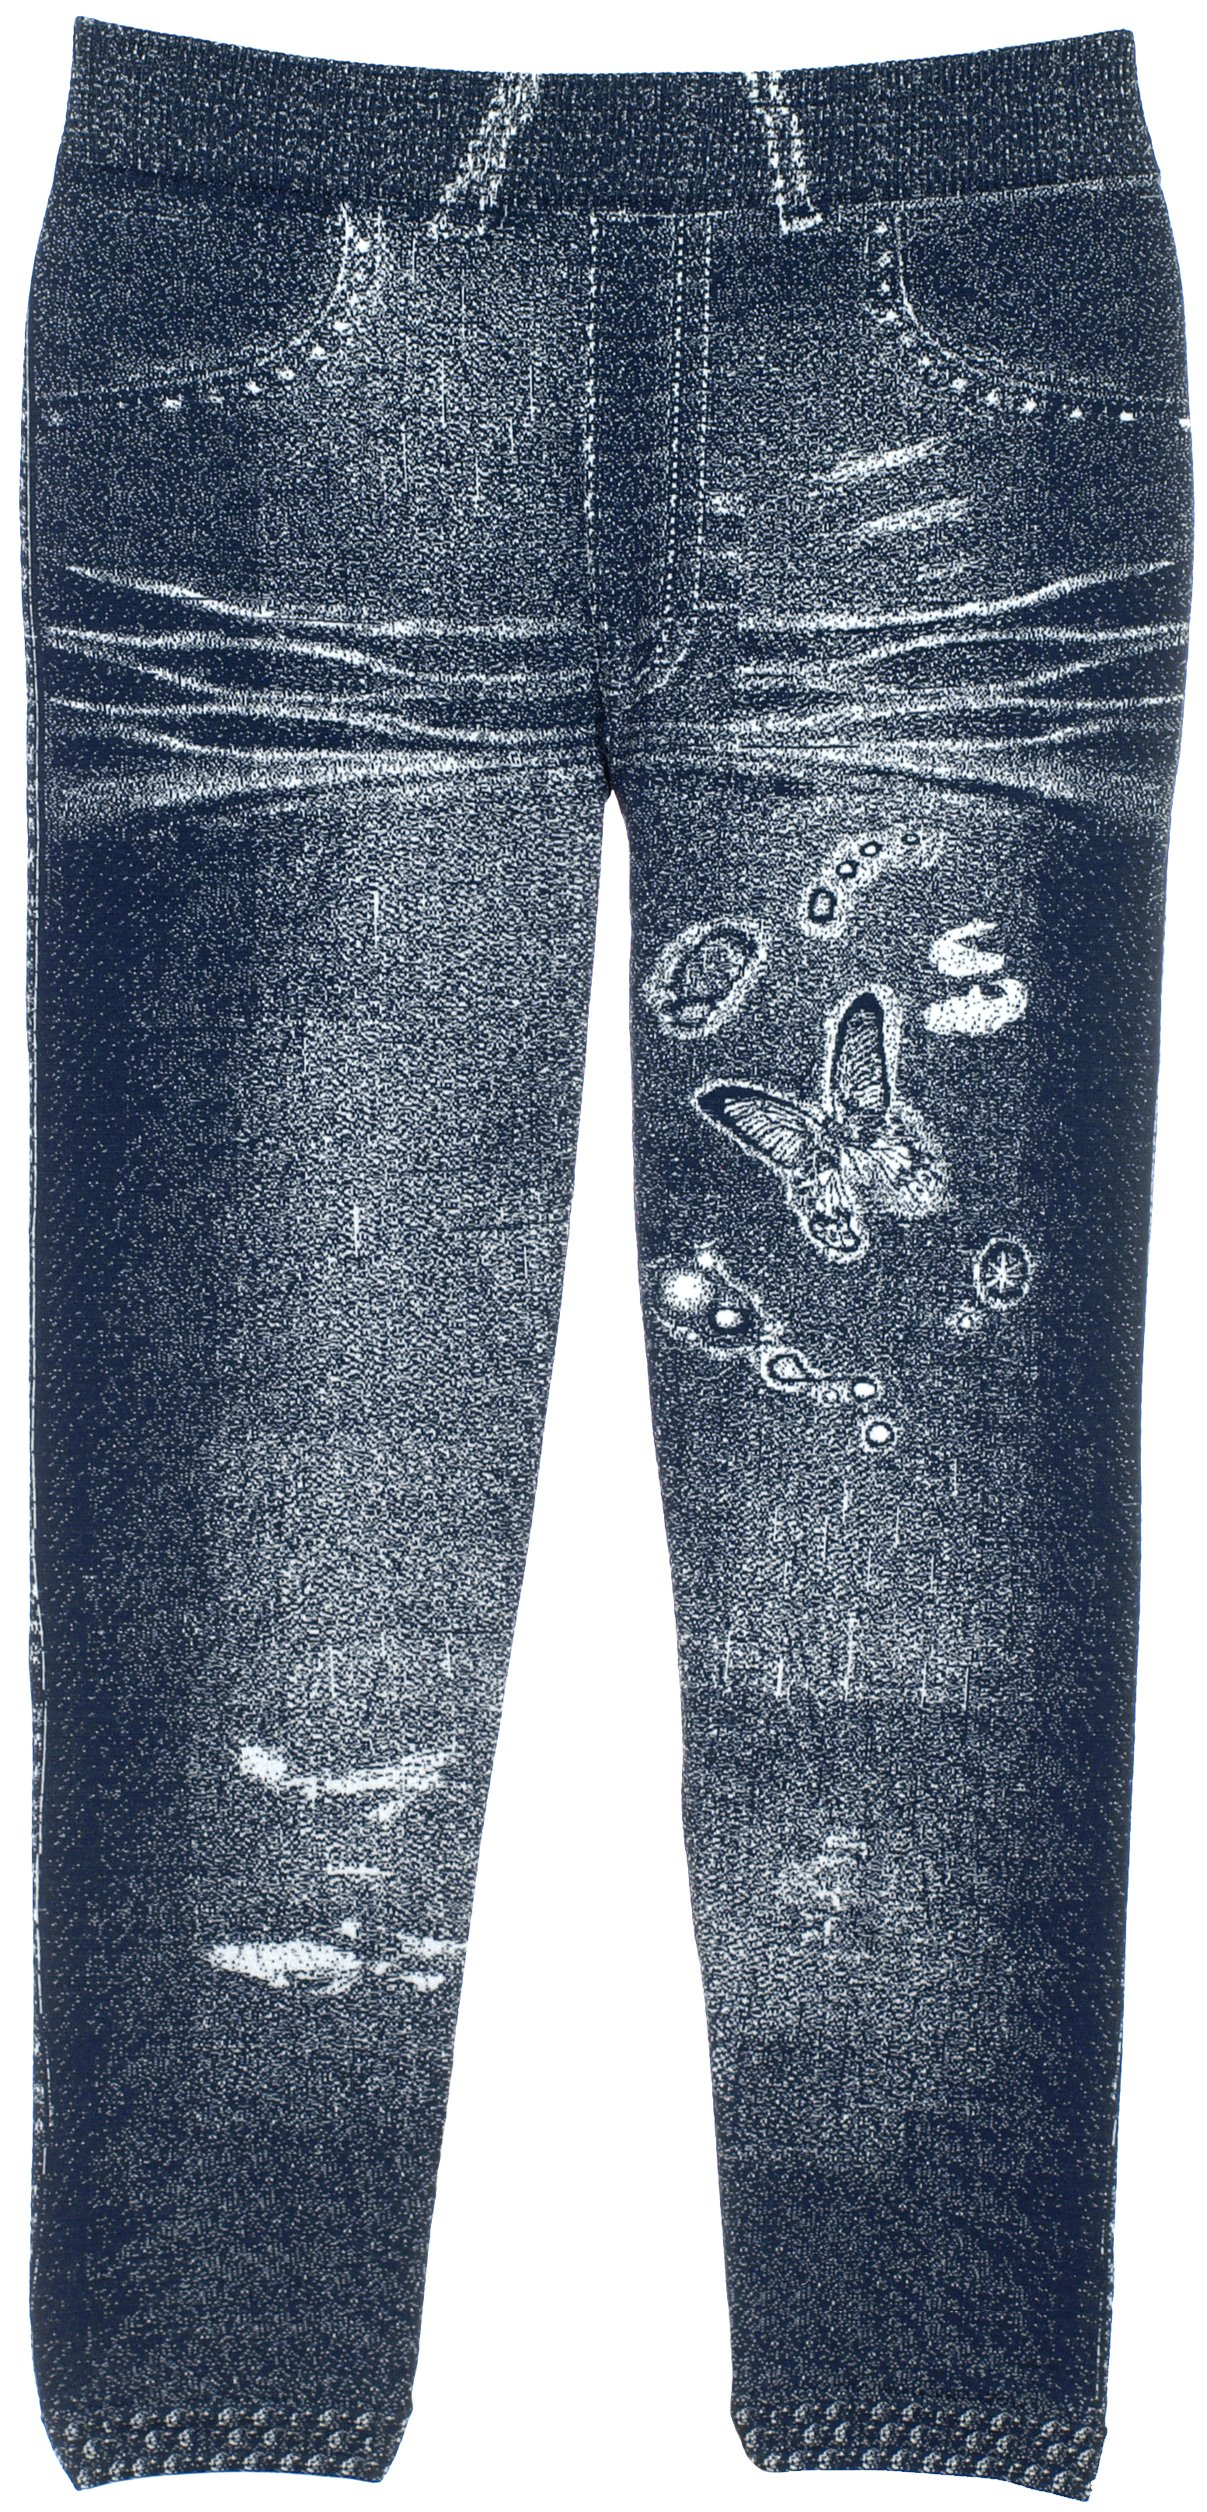 Crush Girl's Jeggings with Sequenced Designs and Fun Prints 14 Great Styles (2T-4T, 22451 Navy)